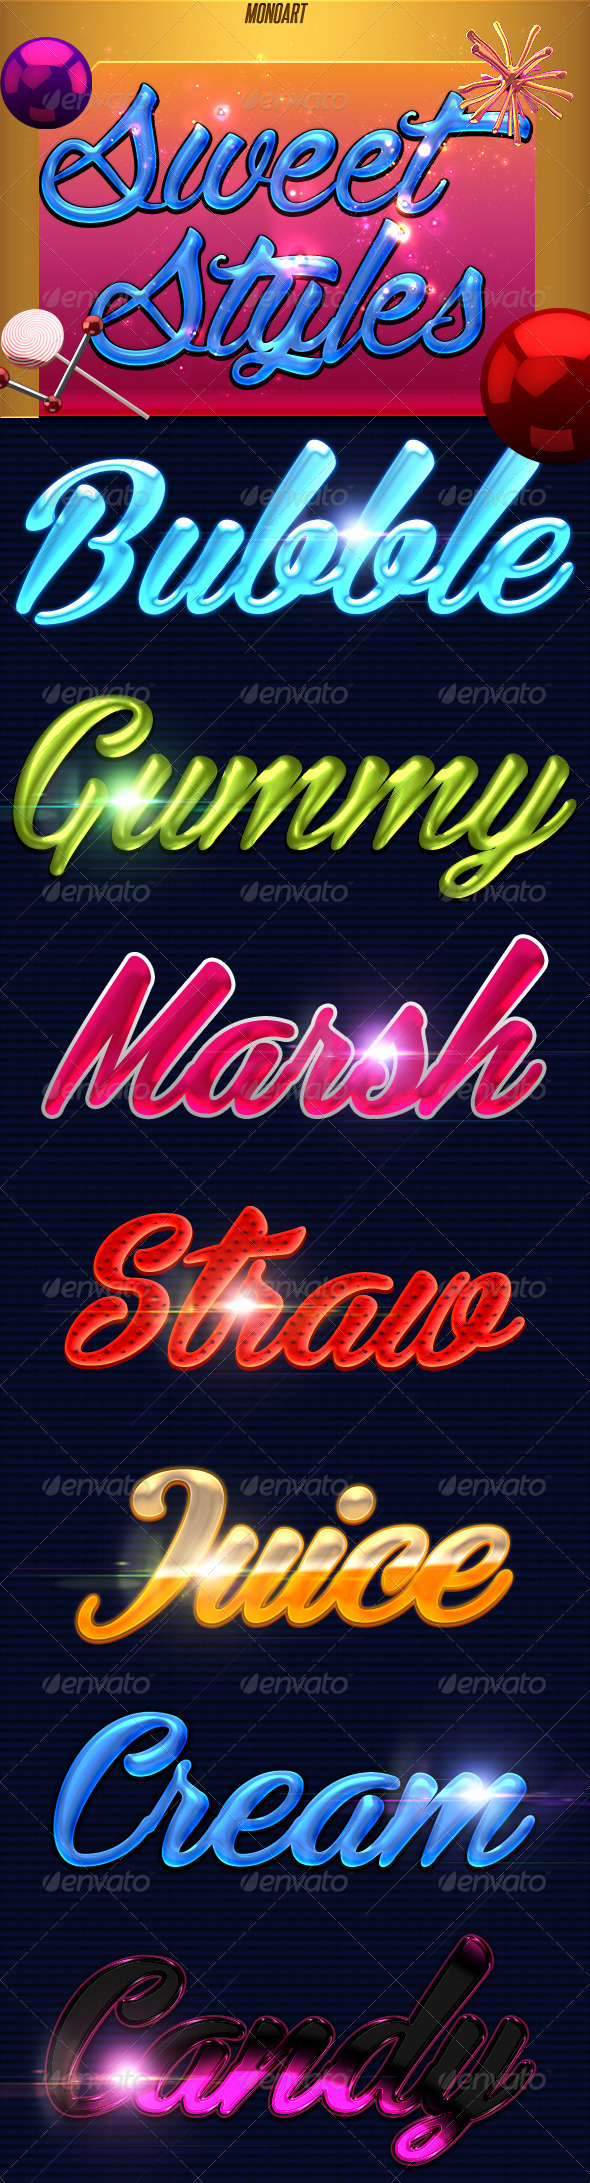 GraphicRiver Sweet Styles 8689585